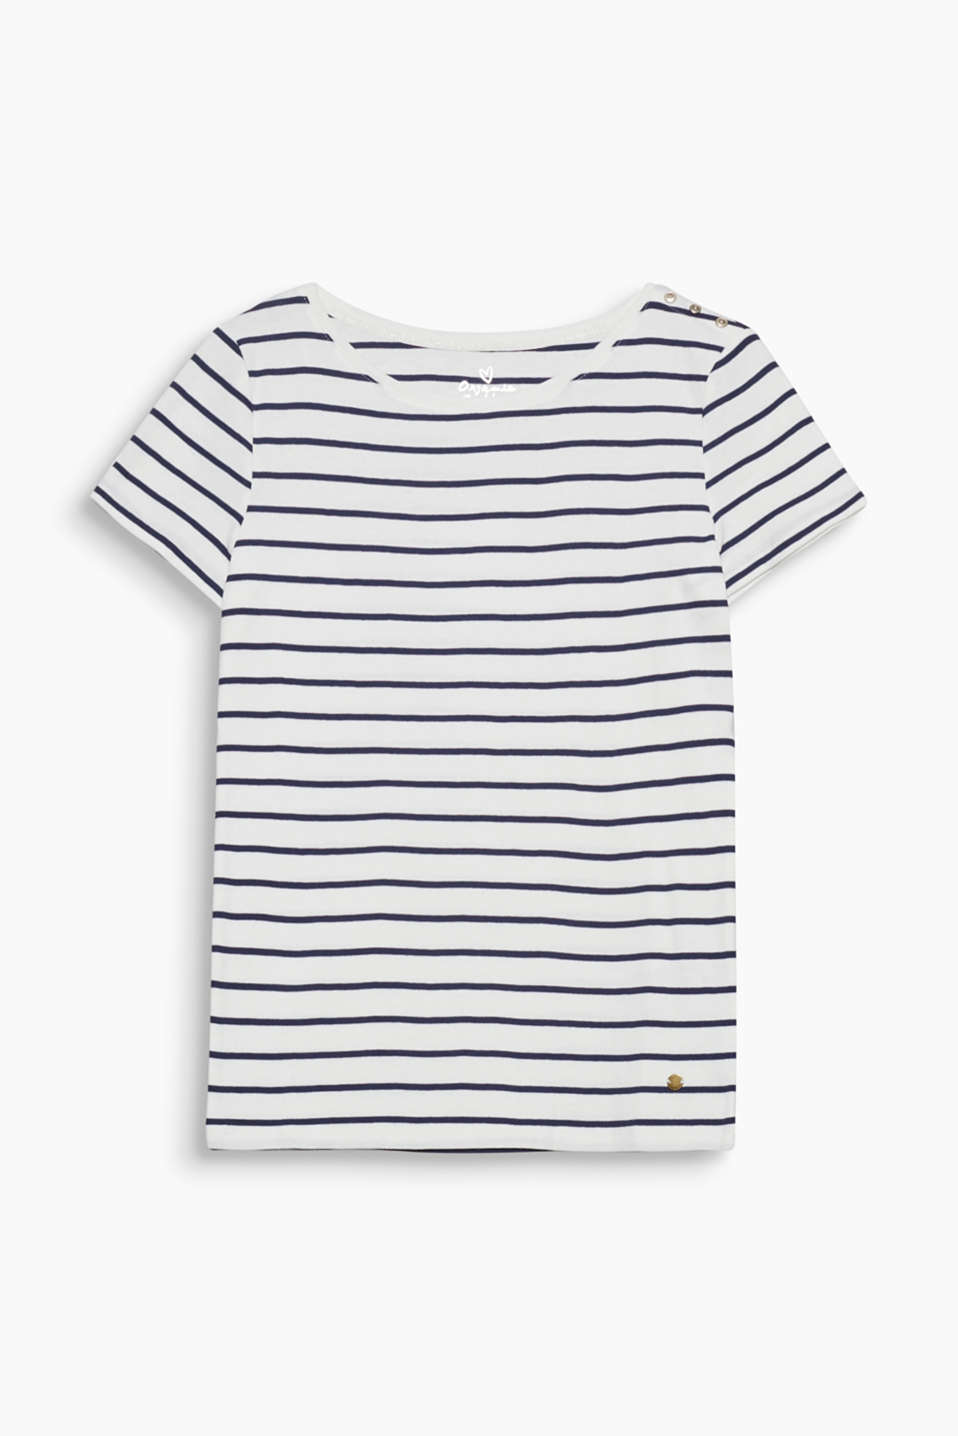 This striped T-shirt made of environmentally friendly, premium organic cotton is an indispensable basic!